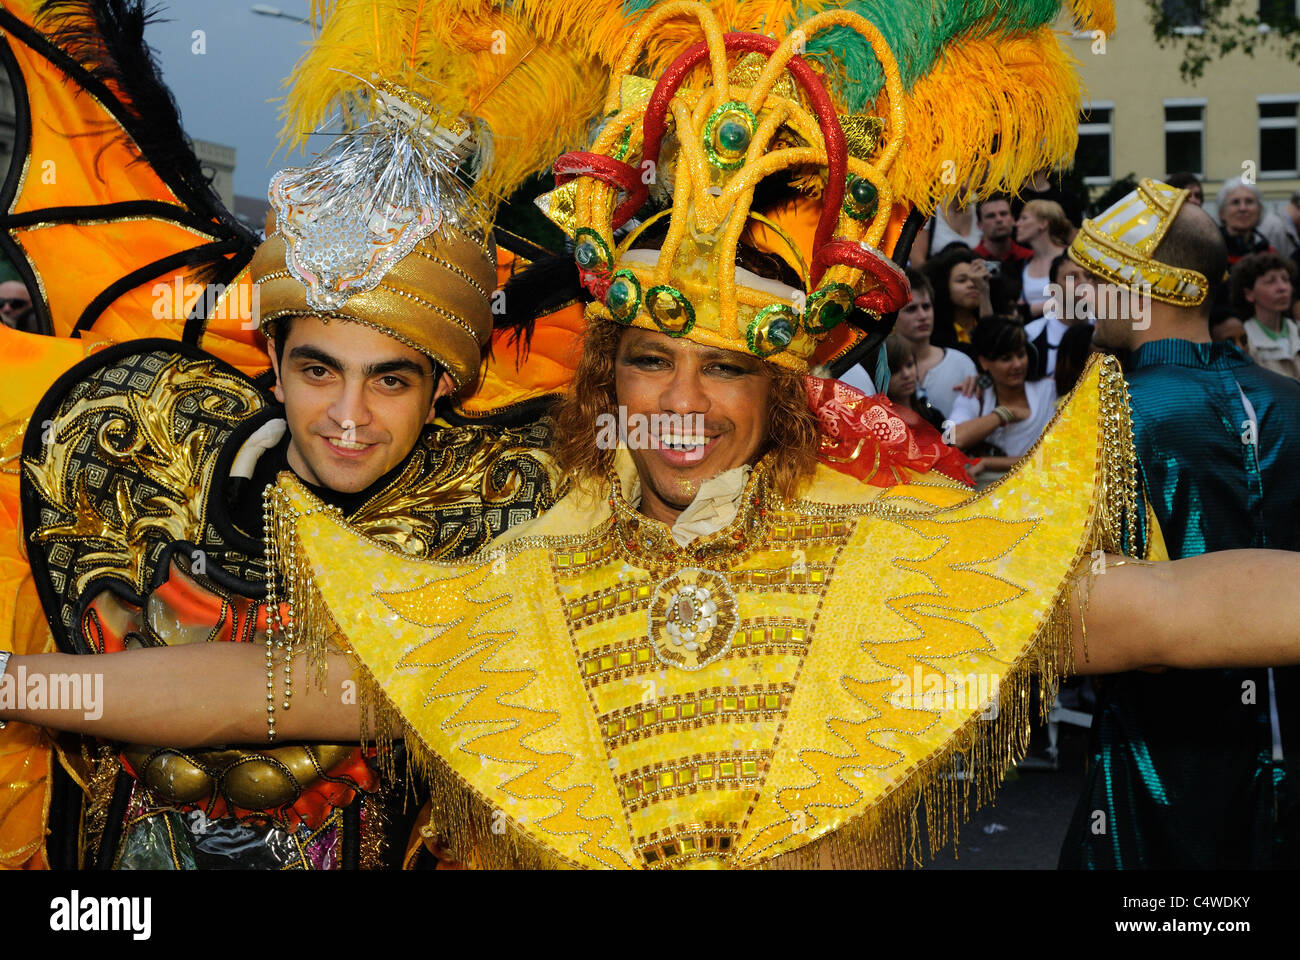 Karneval der Kulturen, Carnival of Cultures, Berlin, Kreuzberg district, Germany, Europe - Stock Image